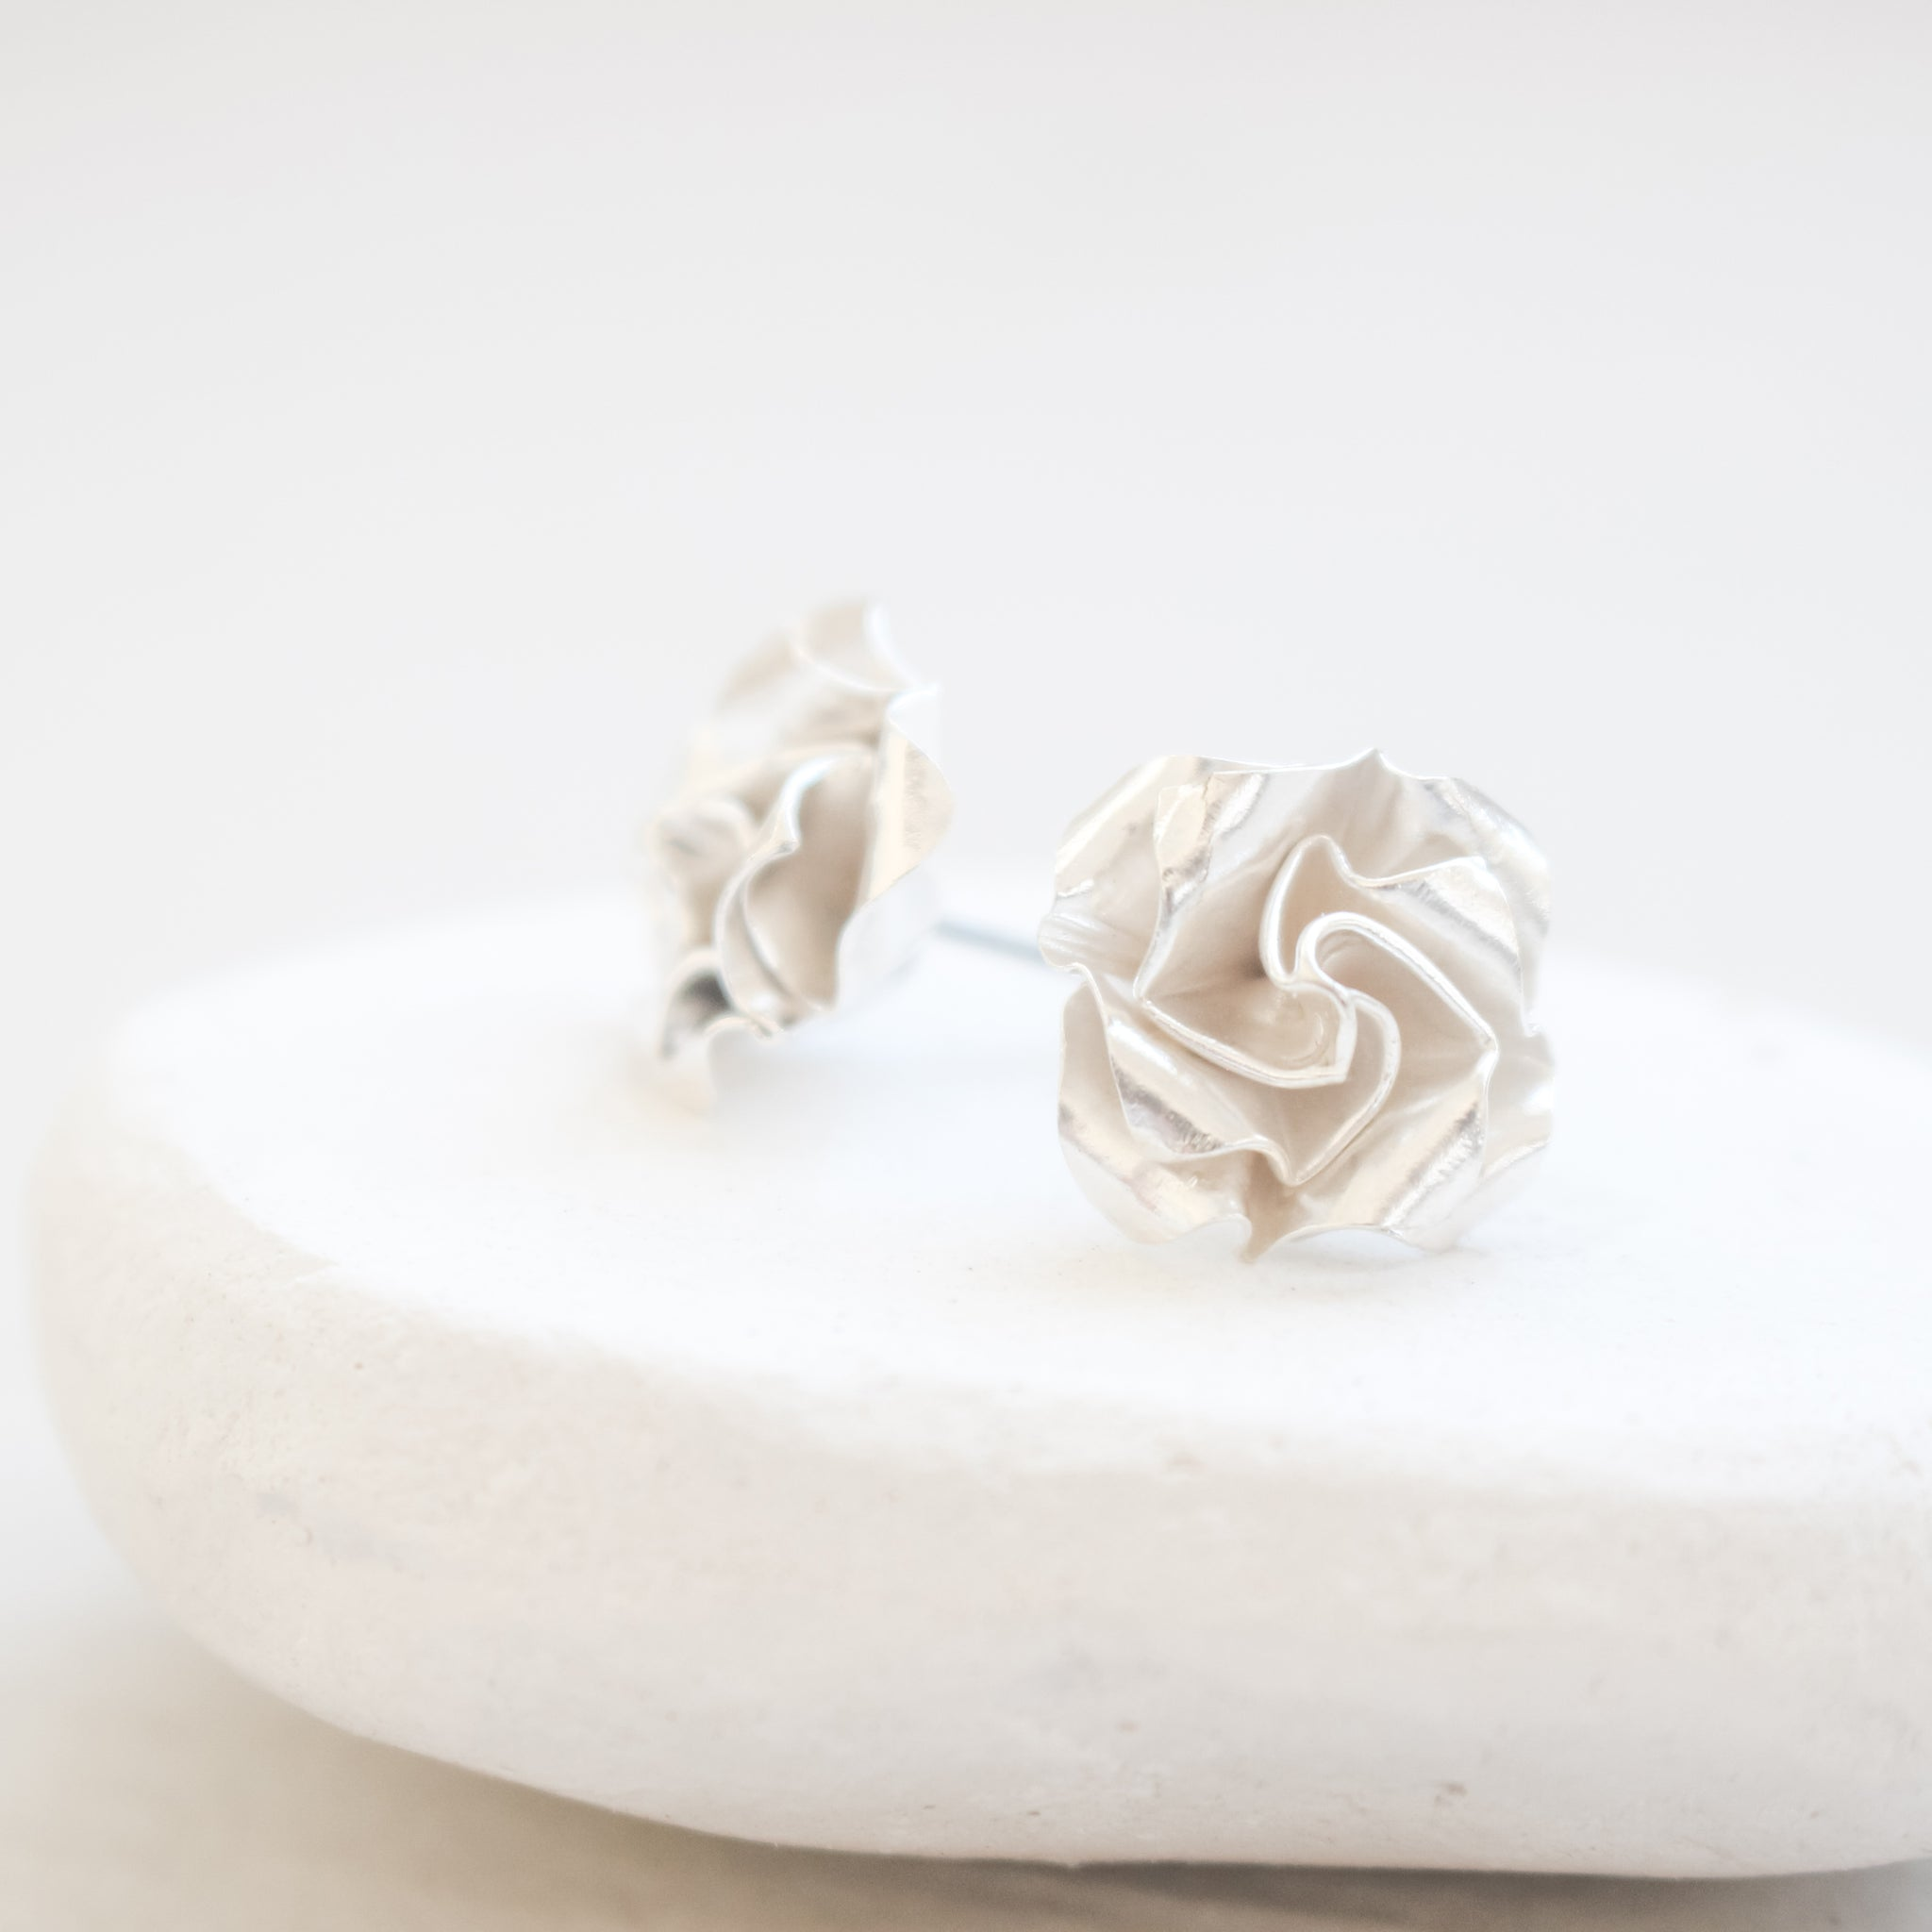 Origami Rose Earrings / Paper Rose Stud / White Rose Earrings